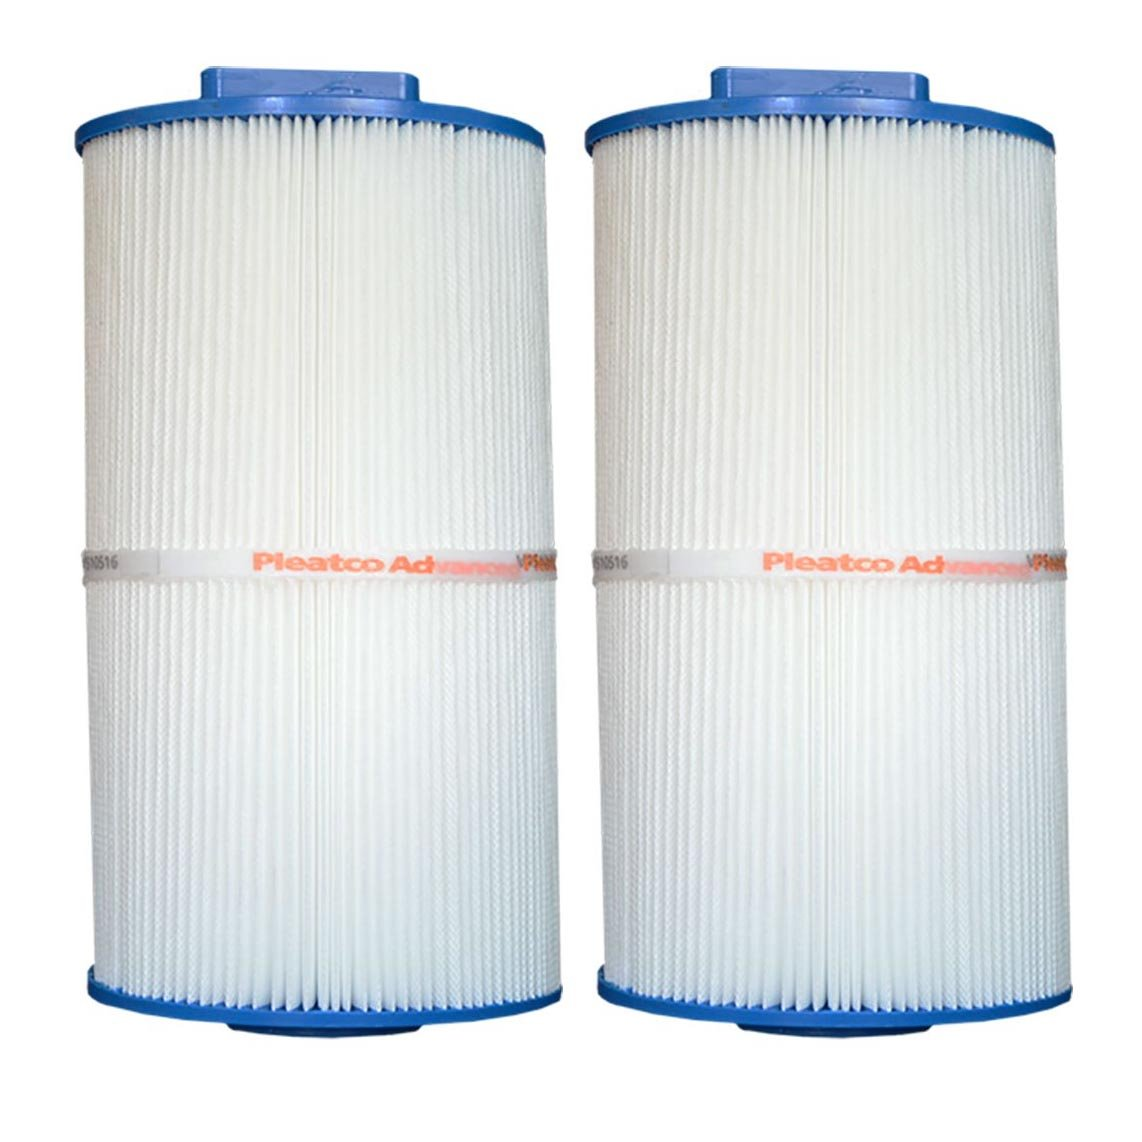 Pleatco Advanced PWW35L Pool Replacement Filter Cartridge (2 Pack)